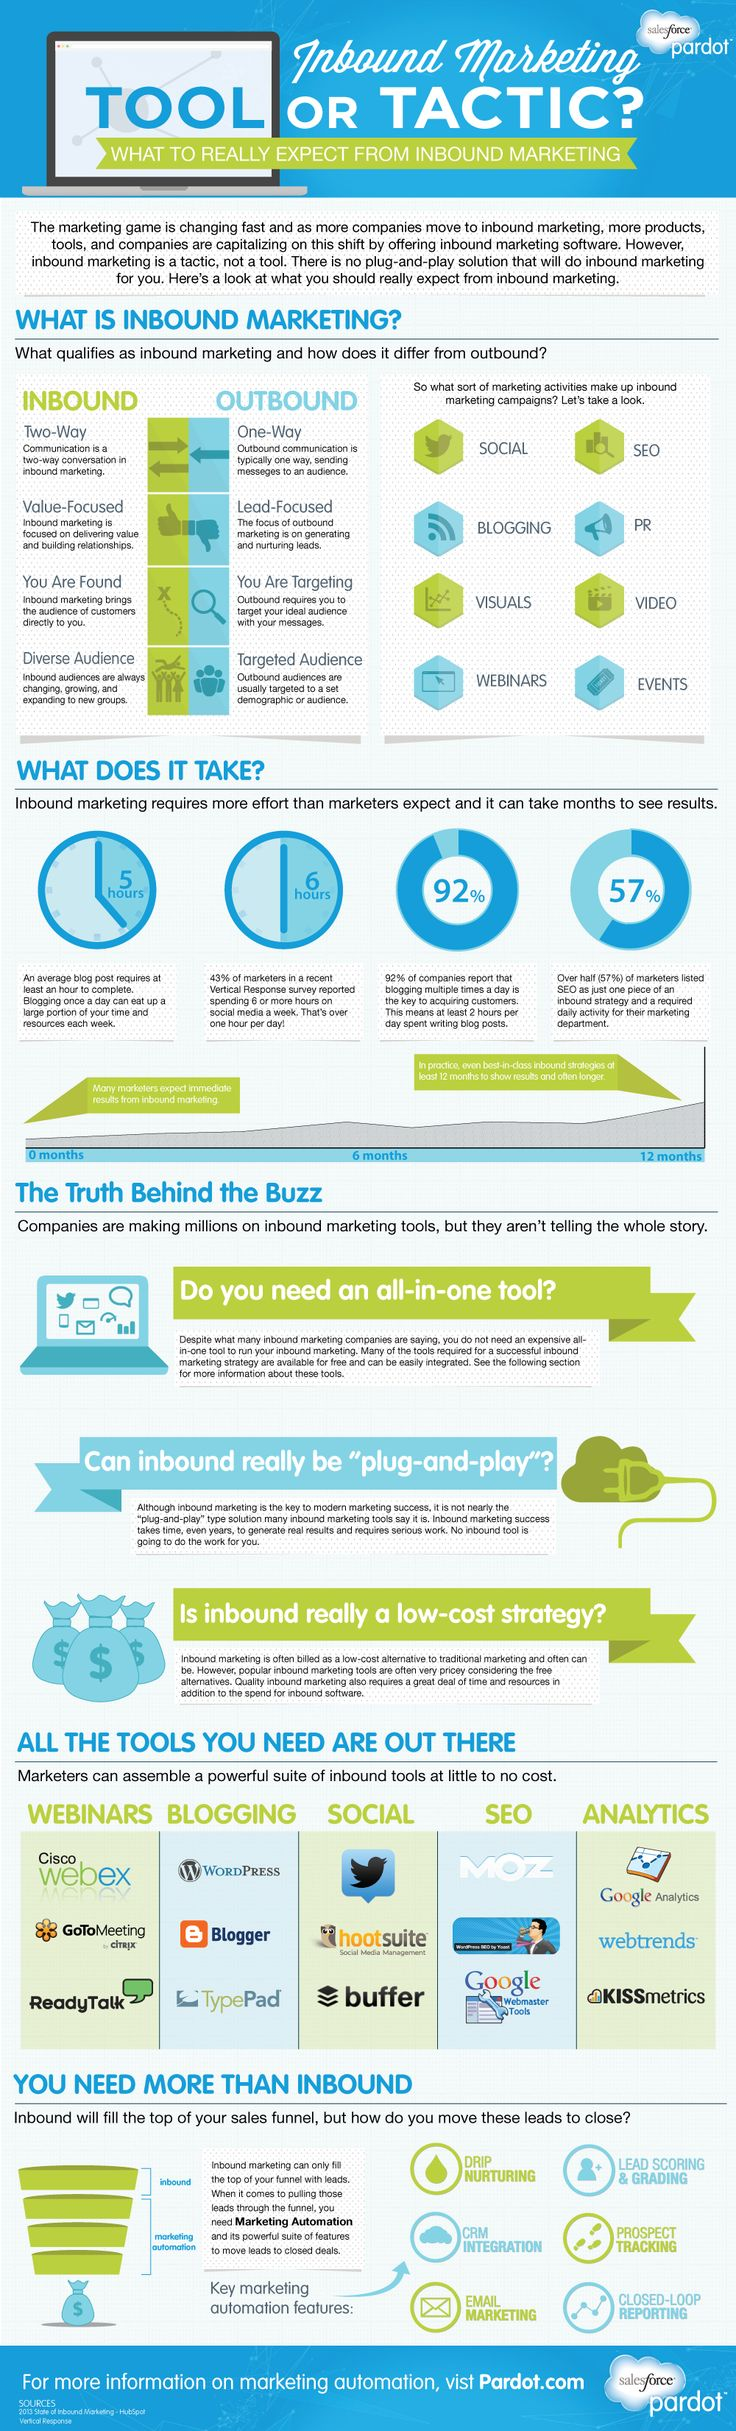 Inbound Marketing - Tool or Tactic? [Infographic]